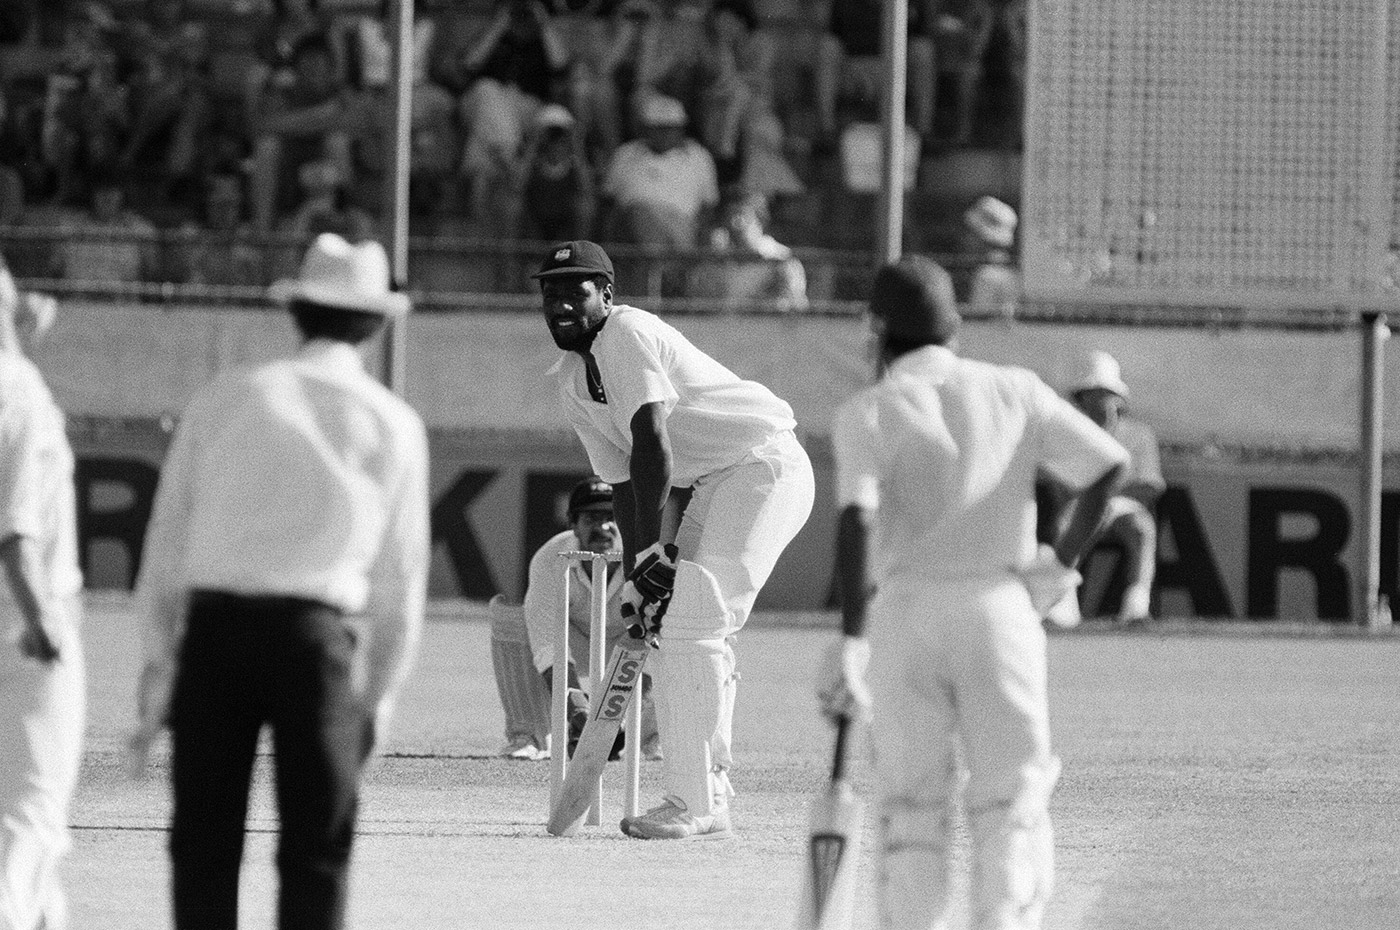 Viv Richards in his stance